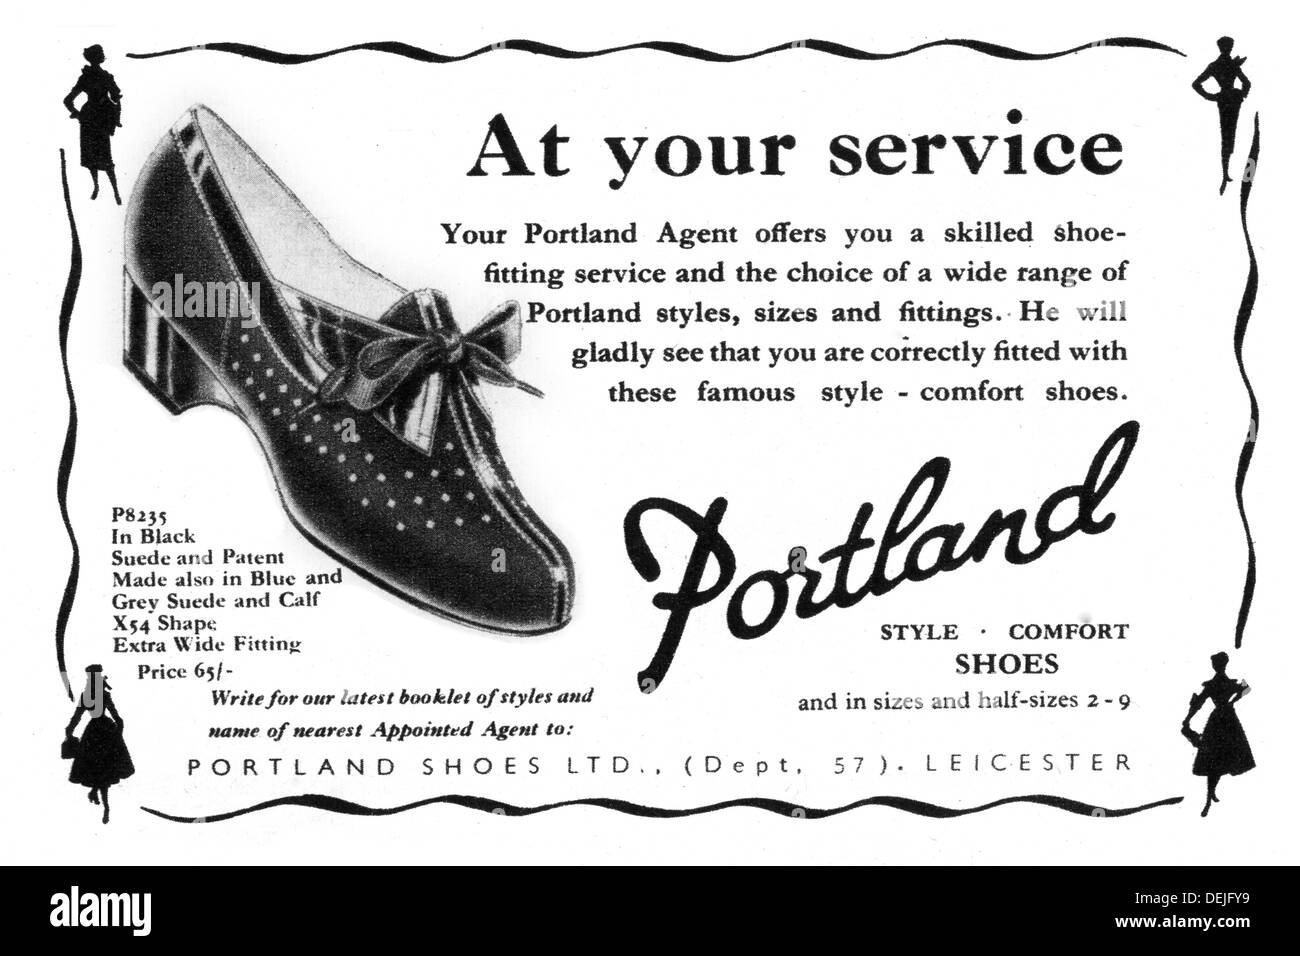 advert for Portland women's shoes in 1953 - Stock Image